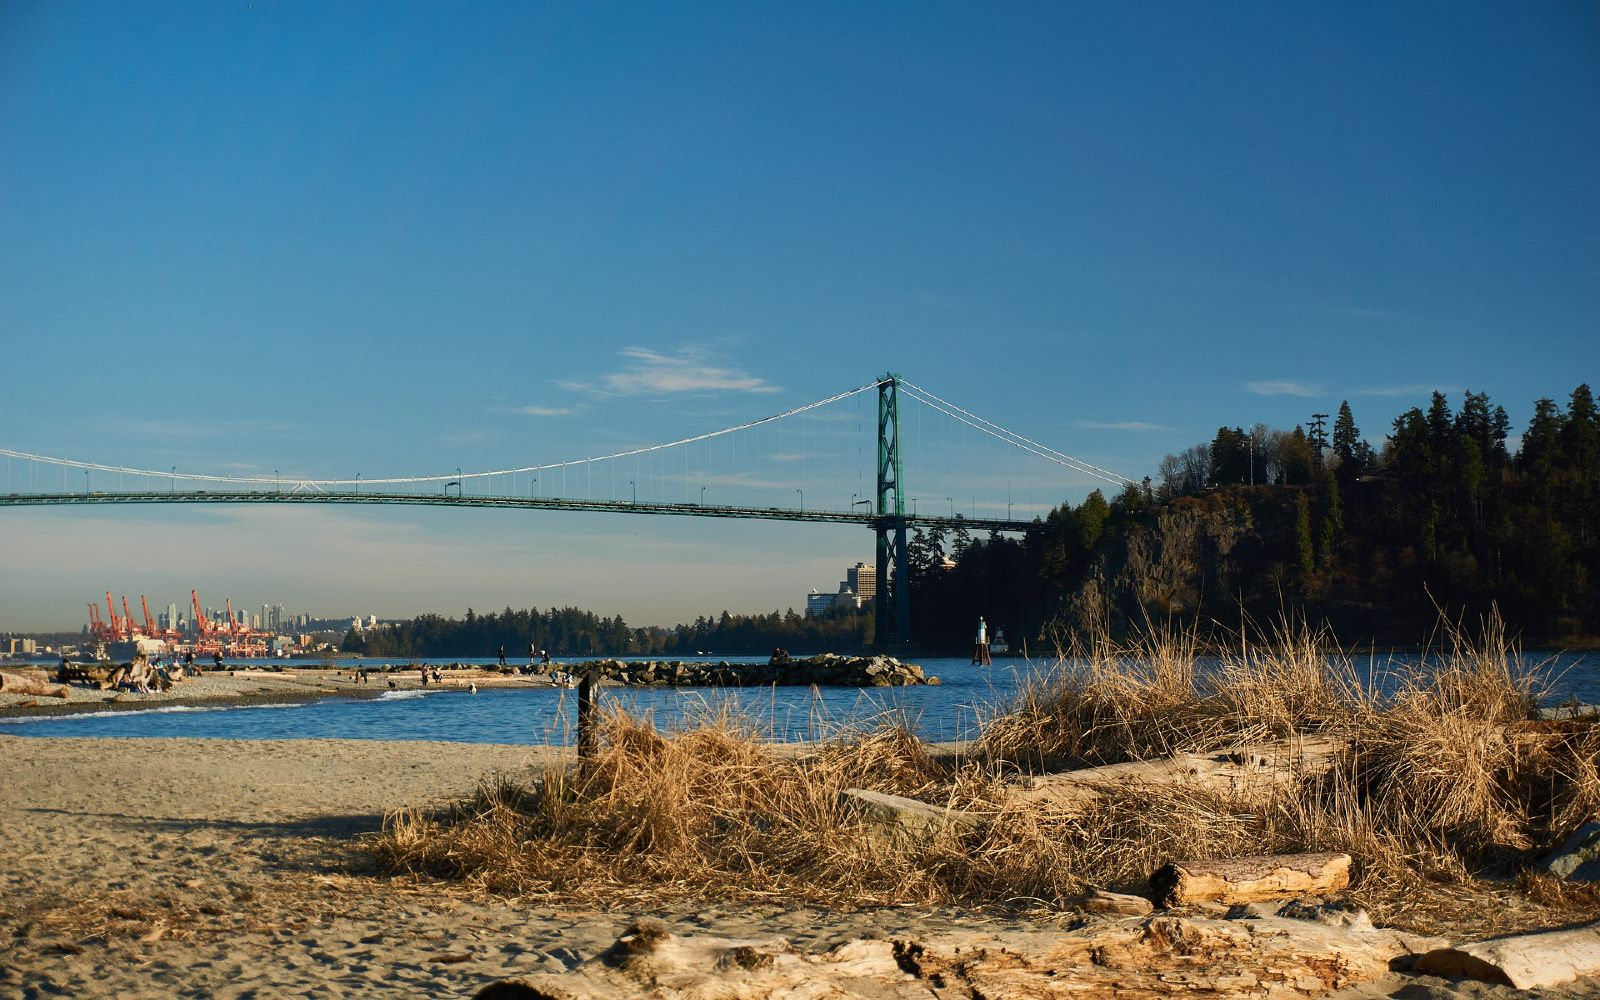 The view of the Lions Gate Bridge from Ambelside Beach, North Vancouver